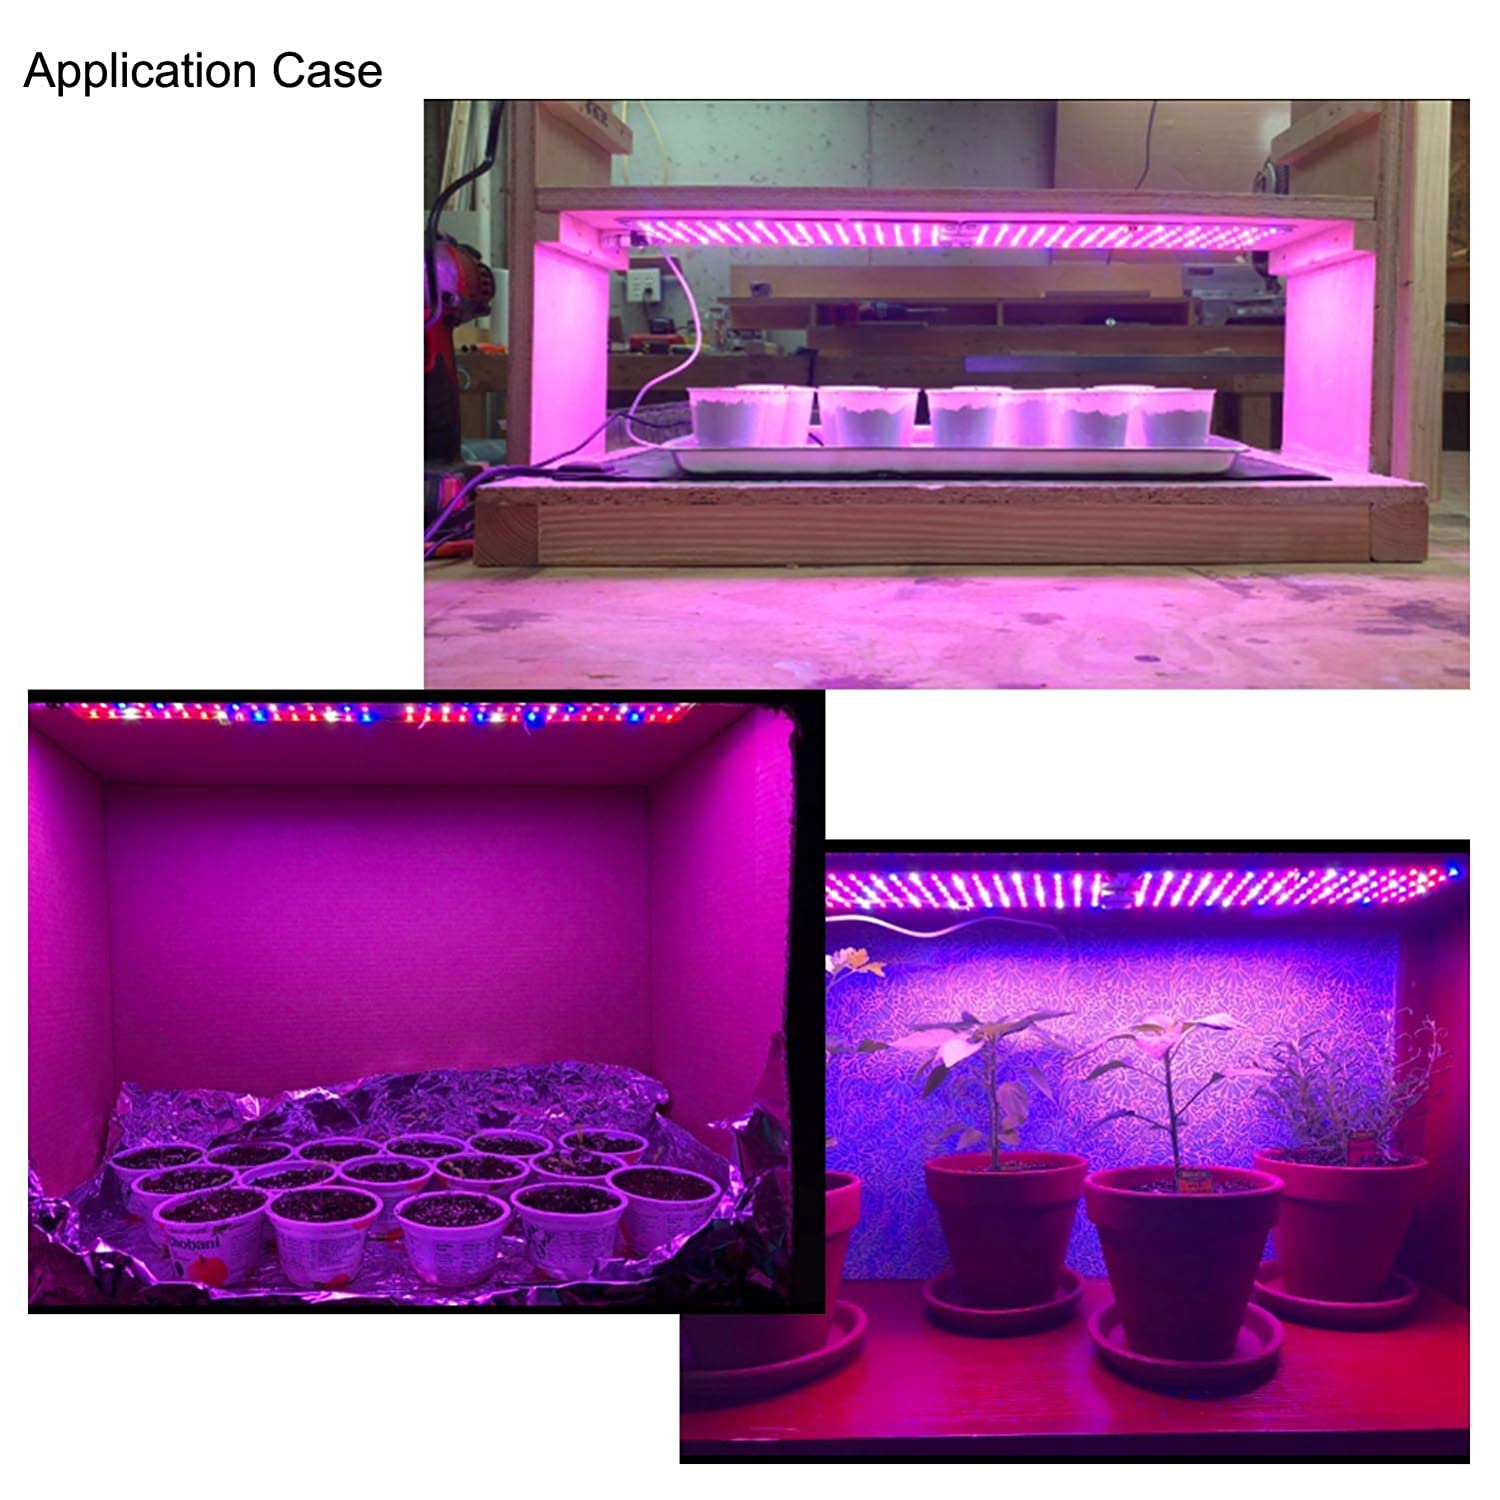 2 Sizes Variable for Greenhouse Hydroponic Indoor Plants Veg Flower Aceple 20W Indoor Growing Ultra-Thin Panel Plant Light with Switch and Plug LED Grow Light